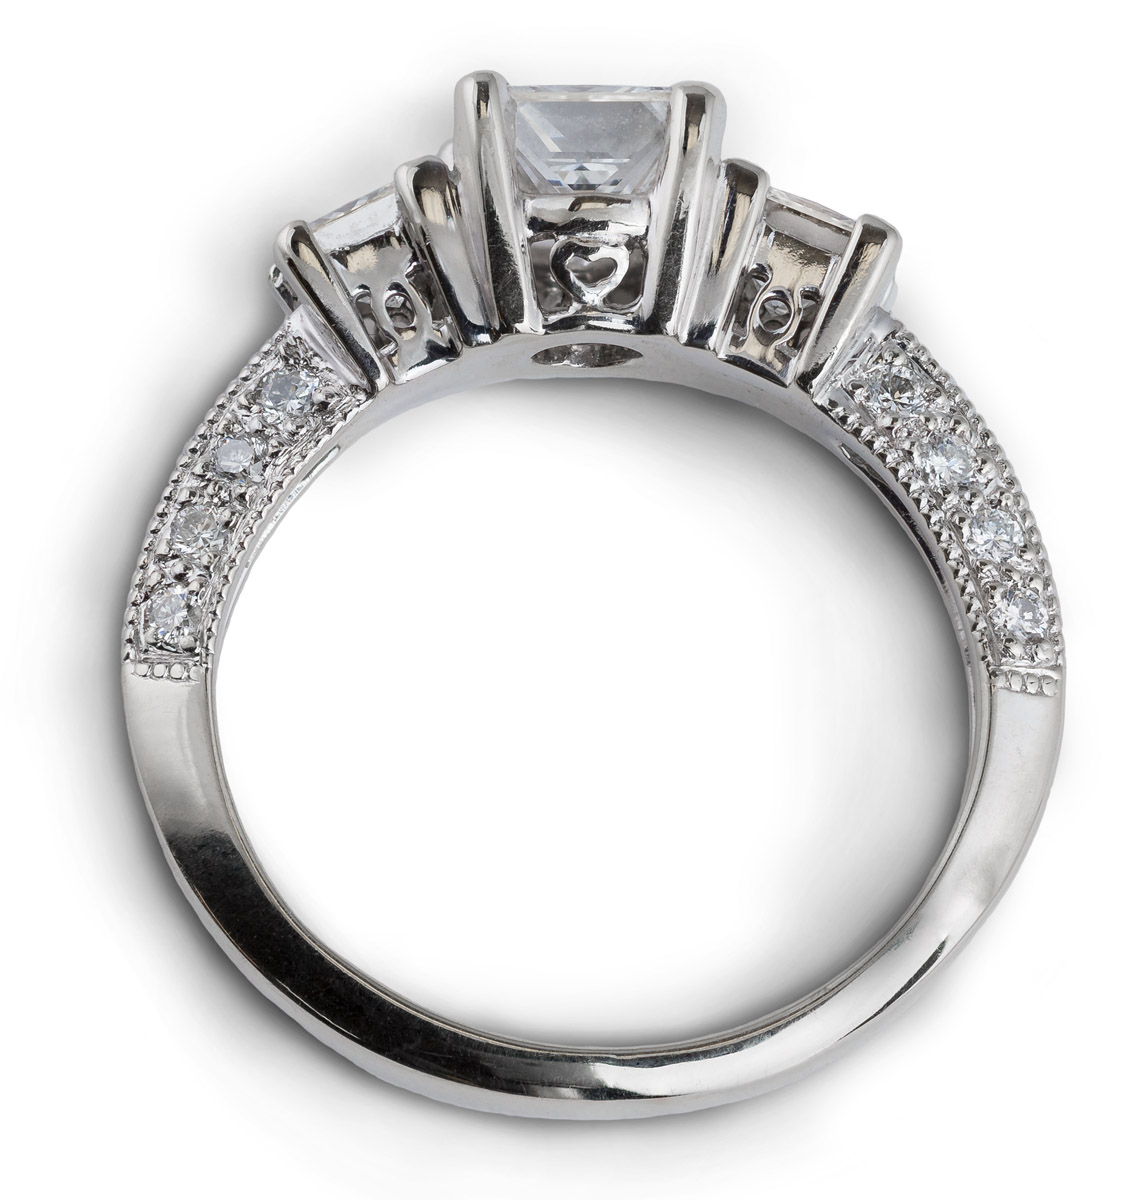 Princess Diamond Engagement Ring with Milgrain Accents - Top